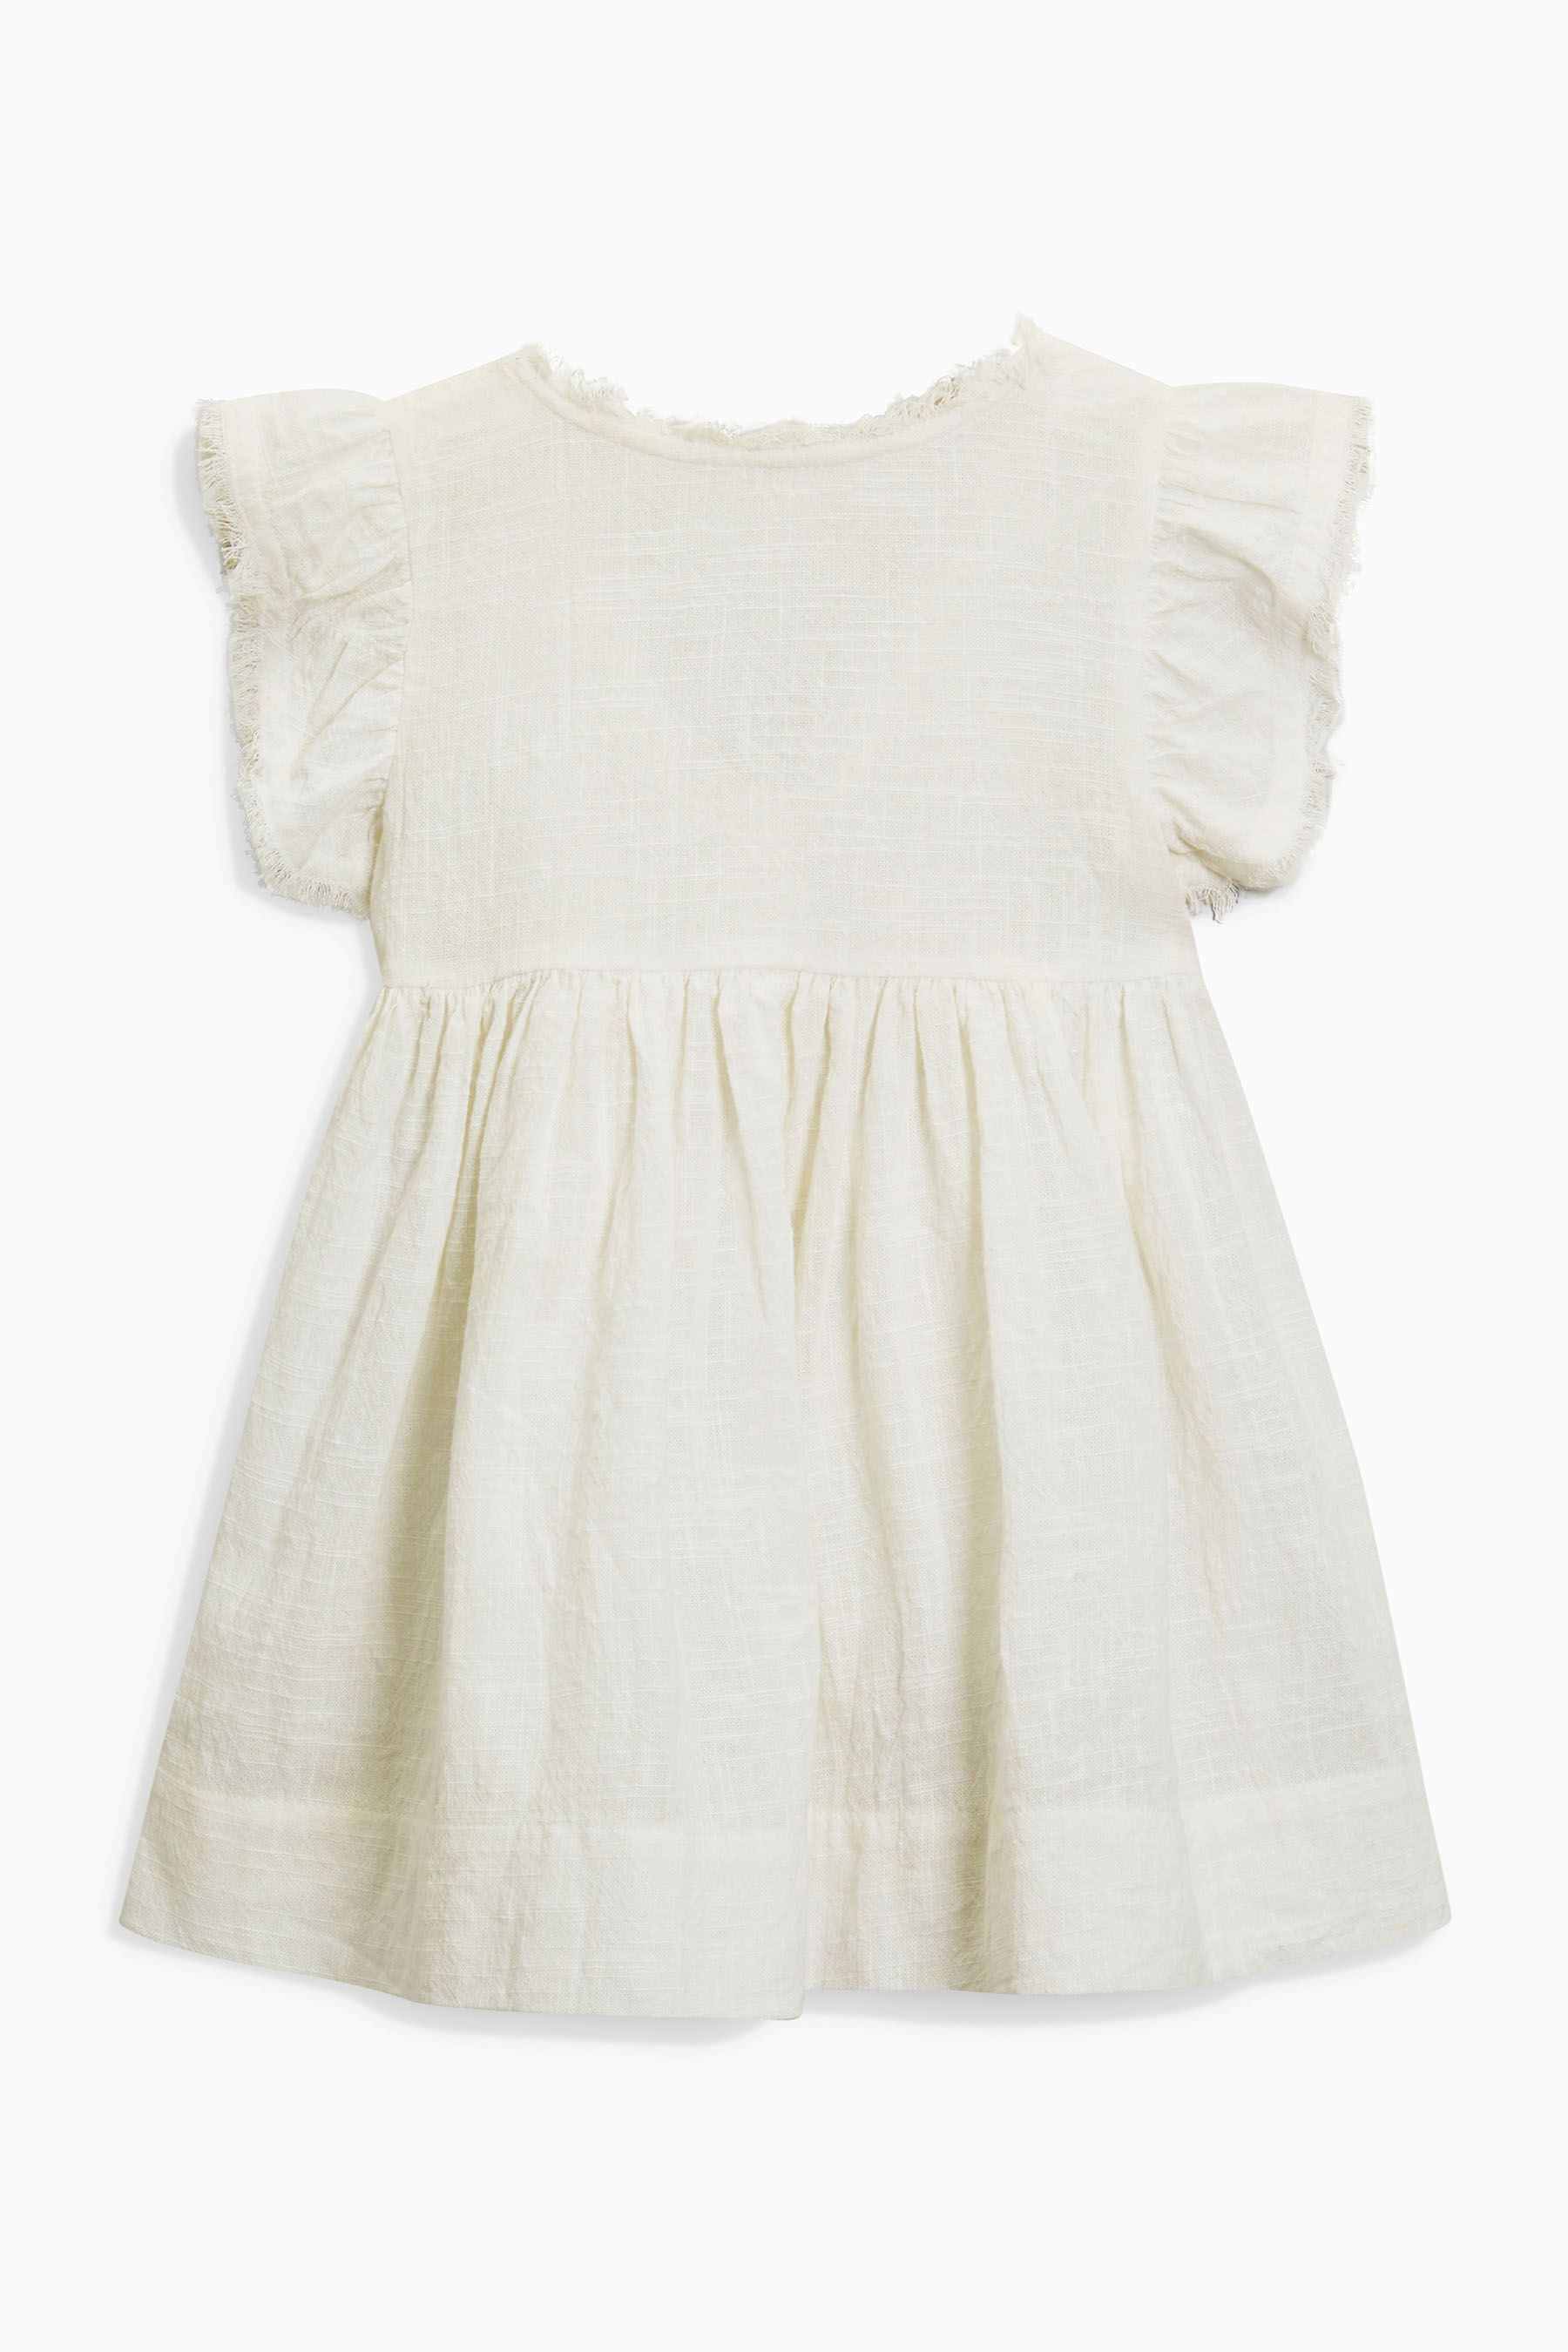 56b540aff Girls Next Frill Sleeve Dress (3mths-6yrs) - White